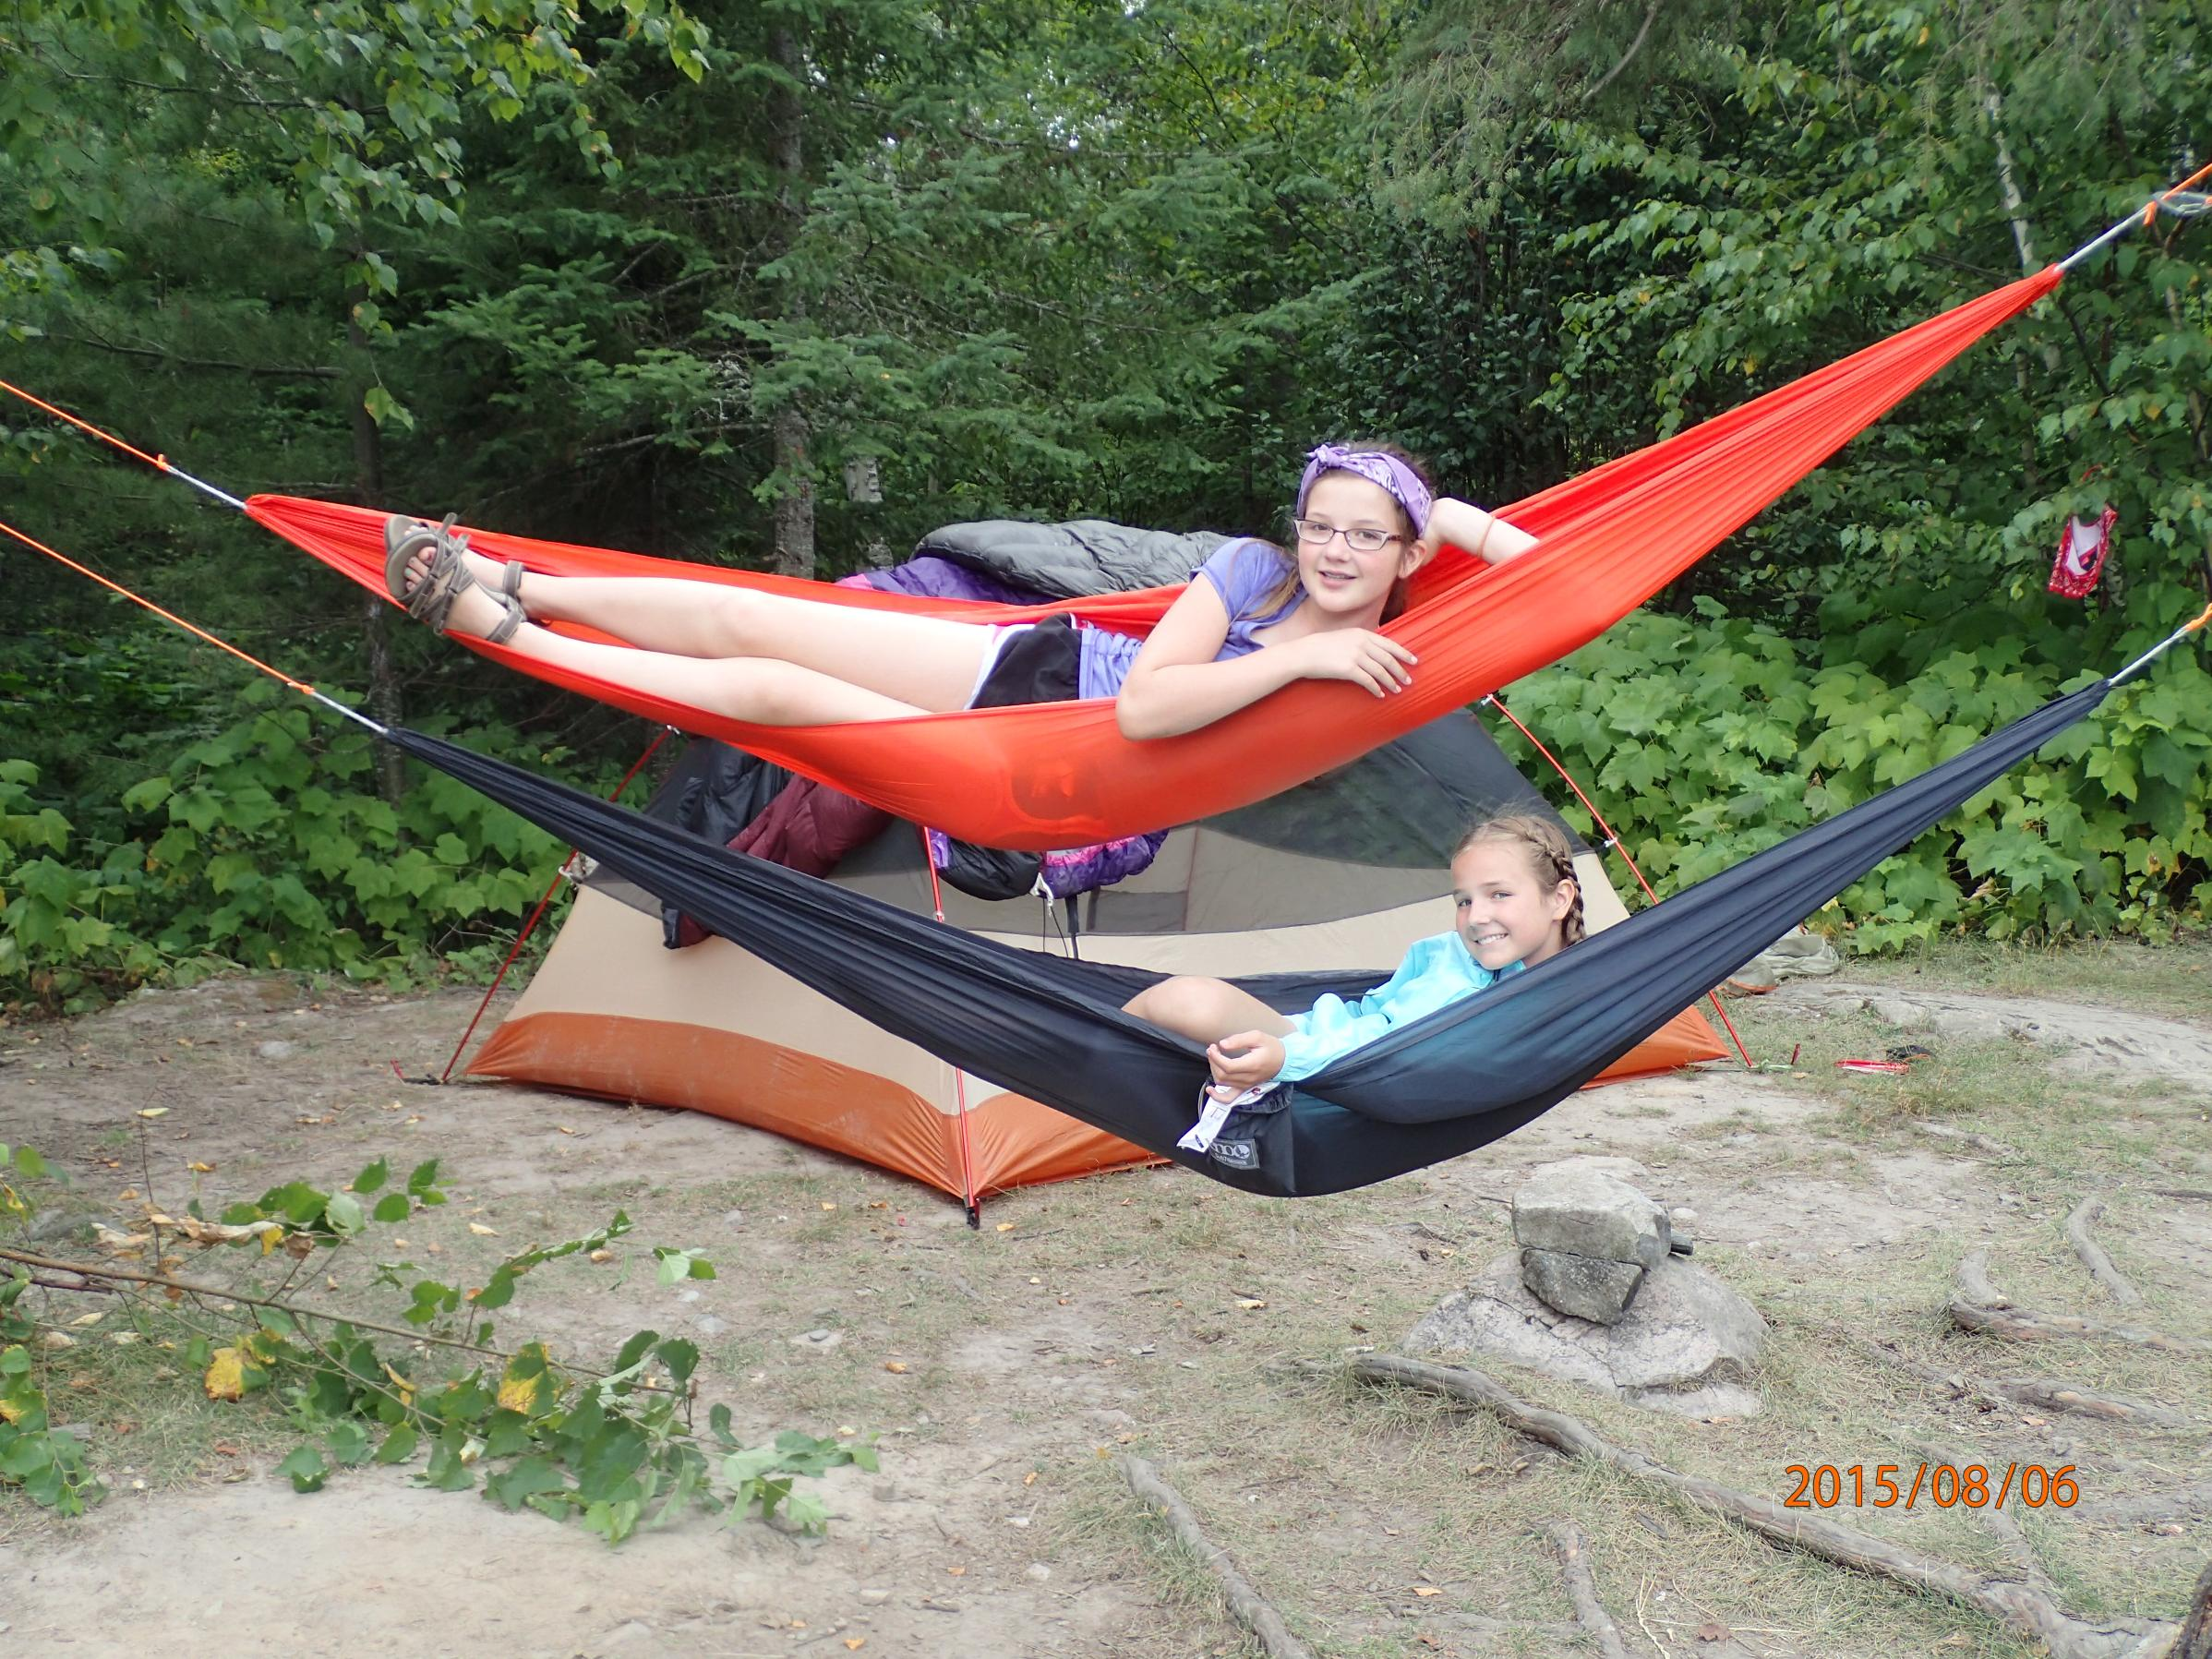 if you live around minneapolis list your e mail and i u0027ll loan ya a real warbon  to try  with underquilt   bwca sleeping in a hammock sucks boundary waters gear forum  rh   bwca